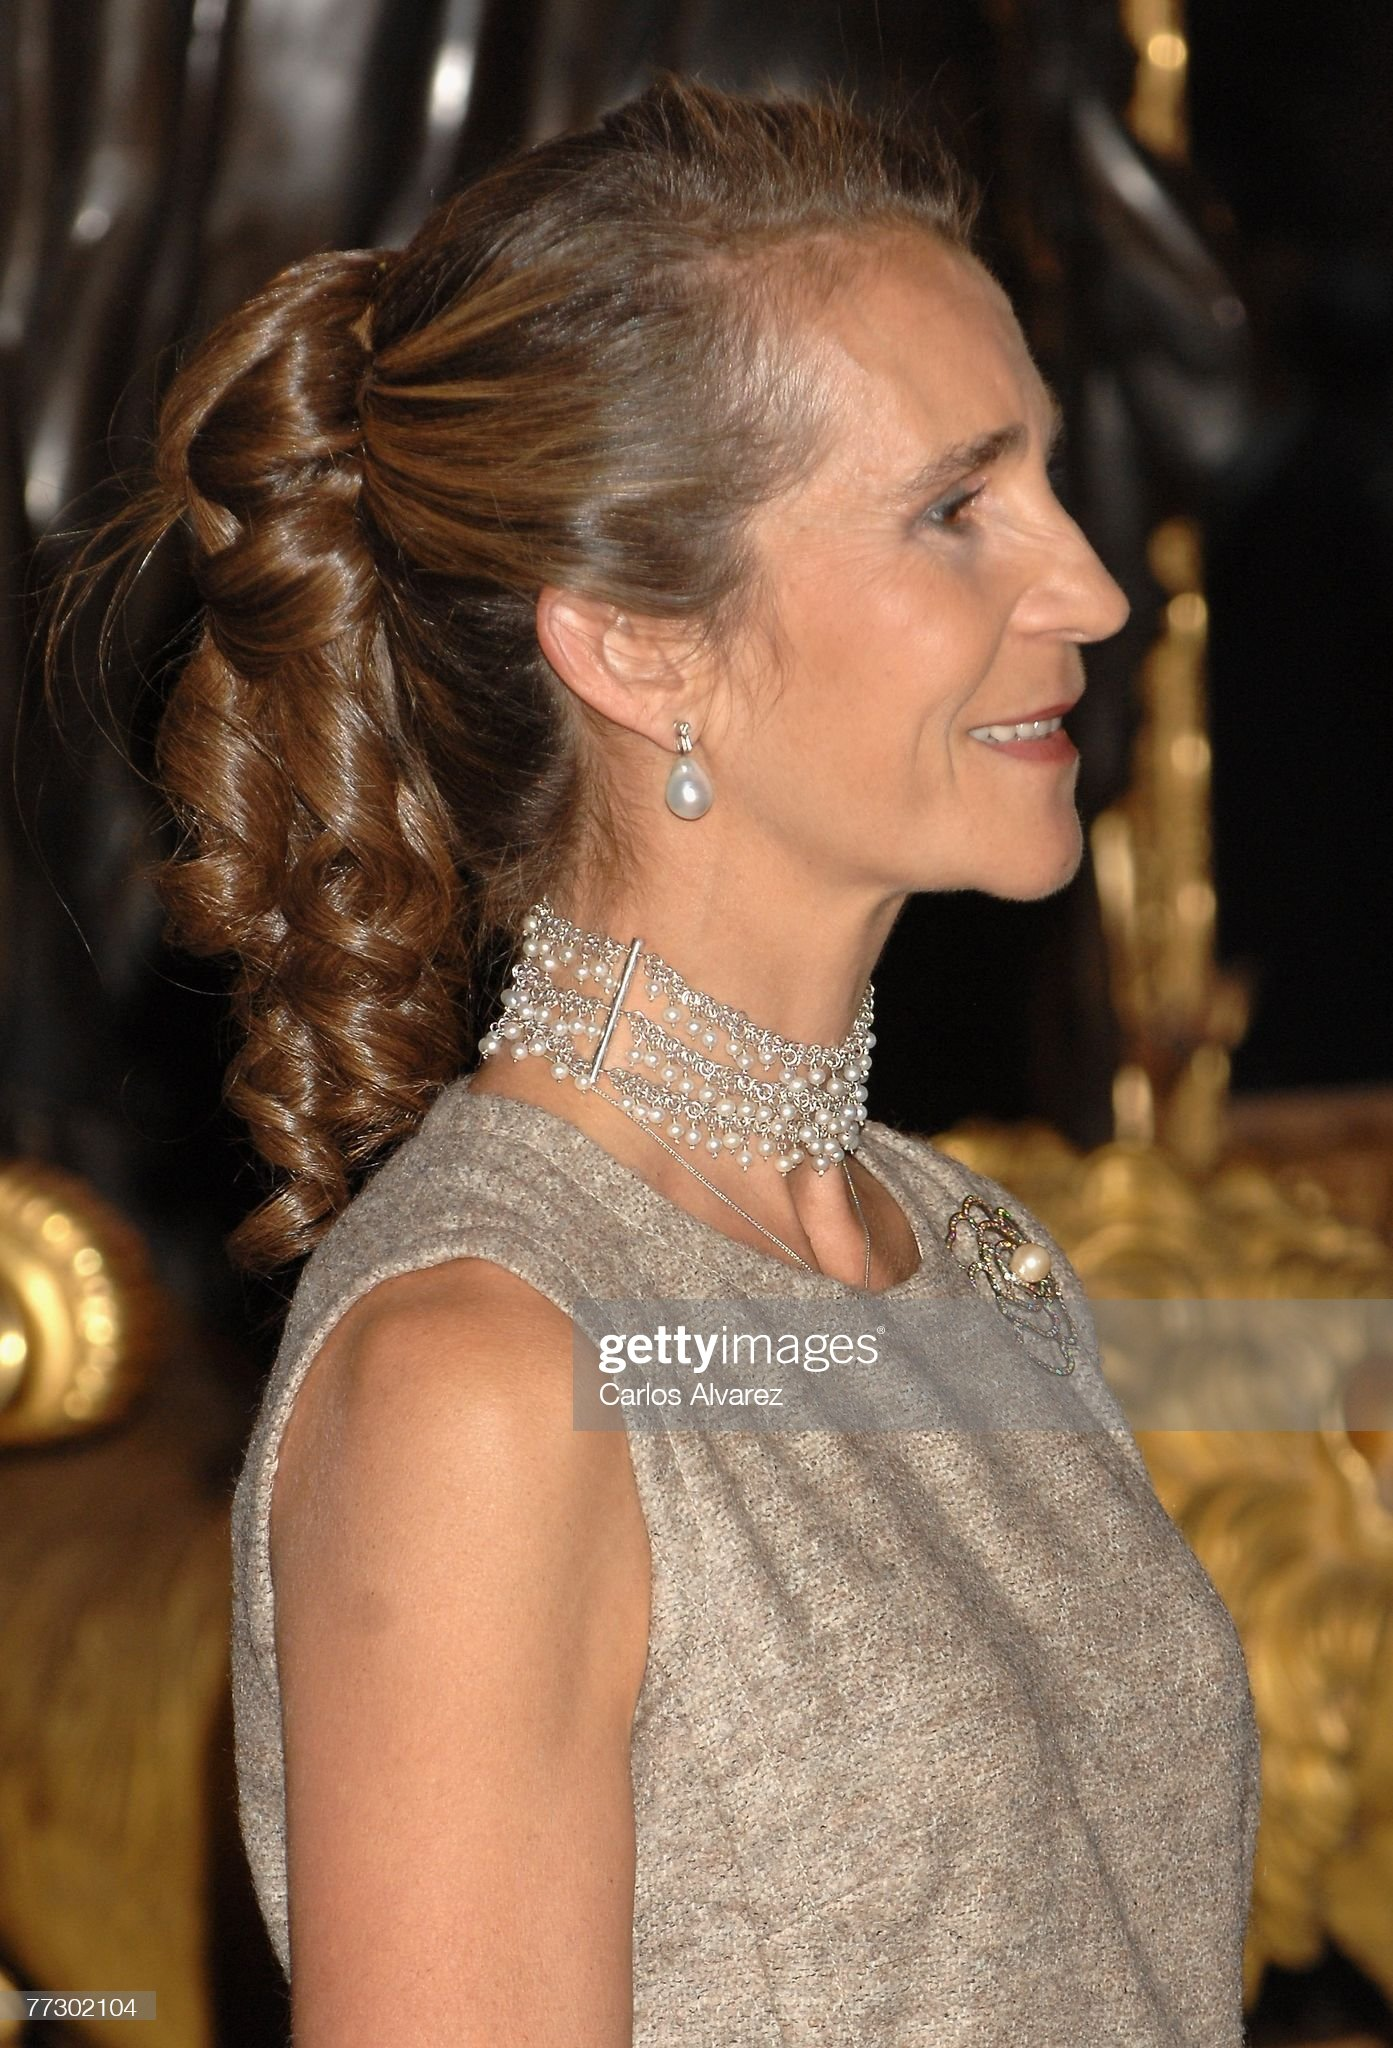 Spanish Royals Attend Reception In Occasion Of Spain National Day At R : News Photo